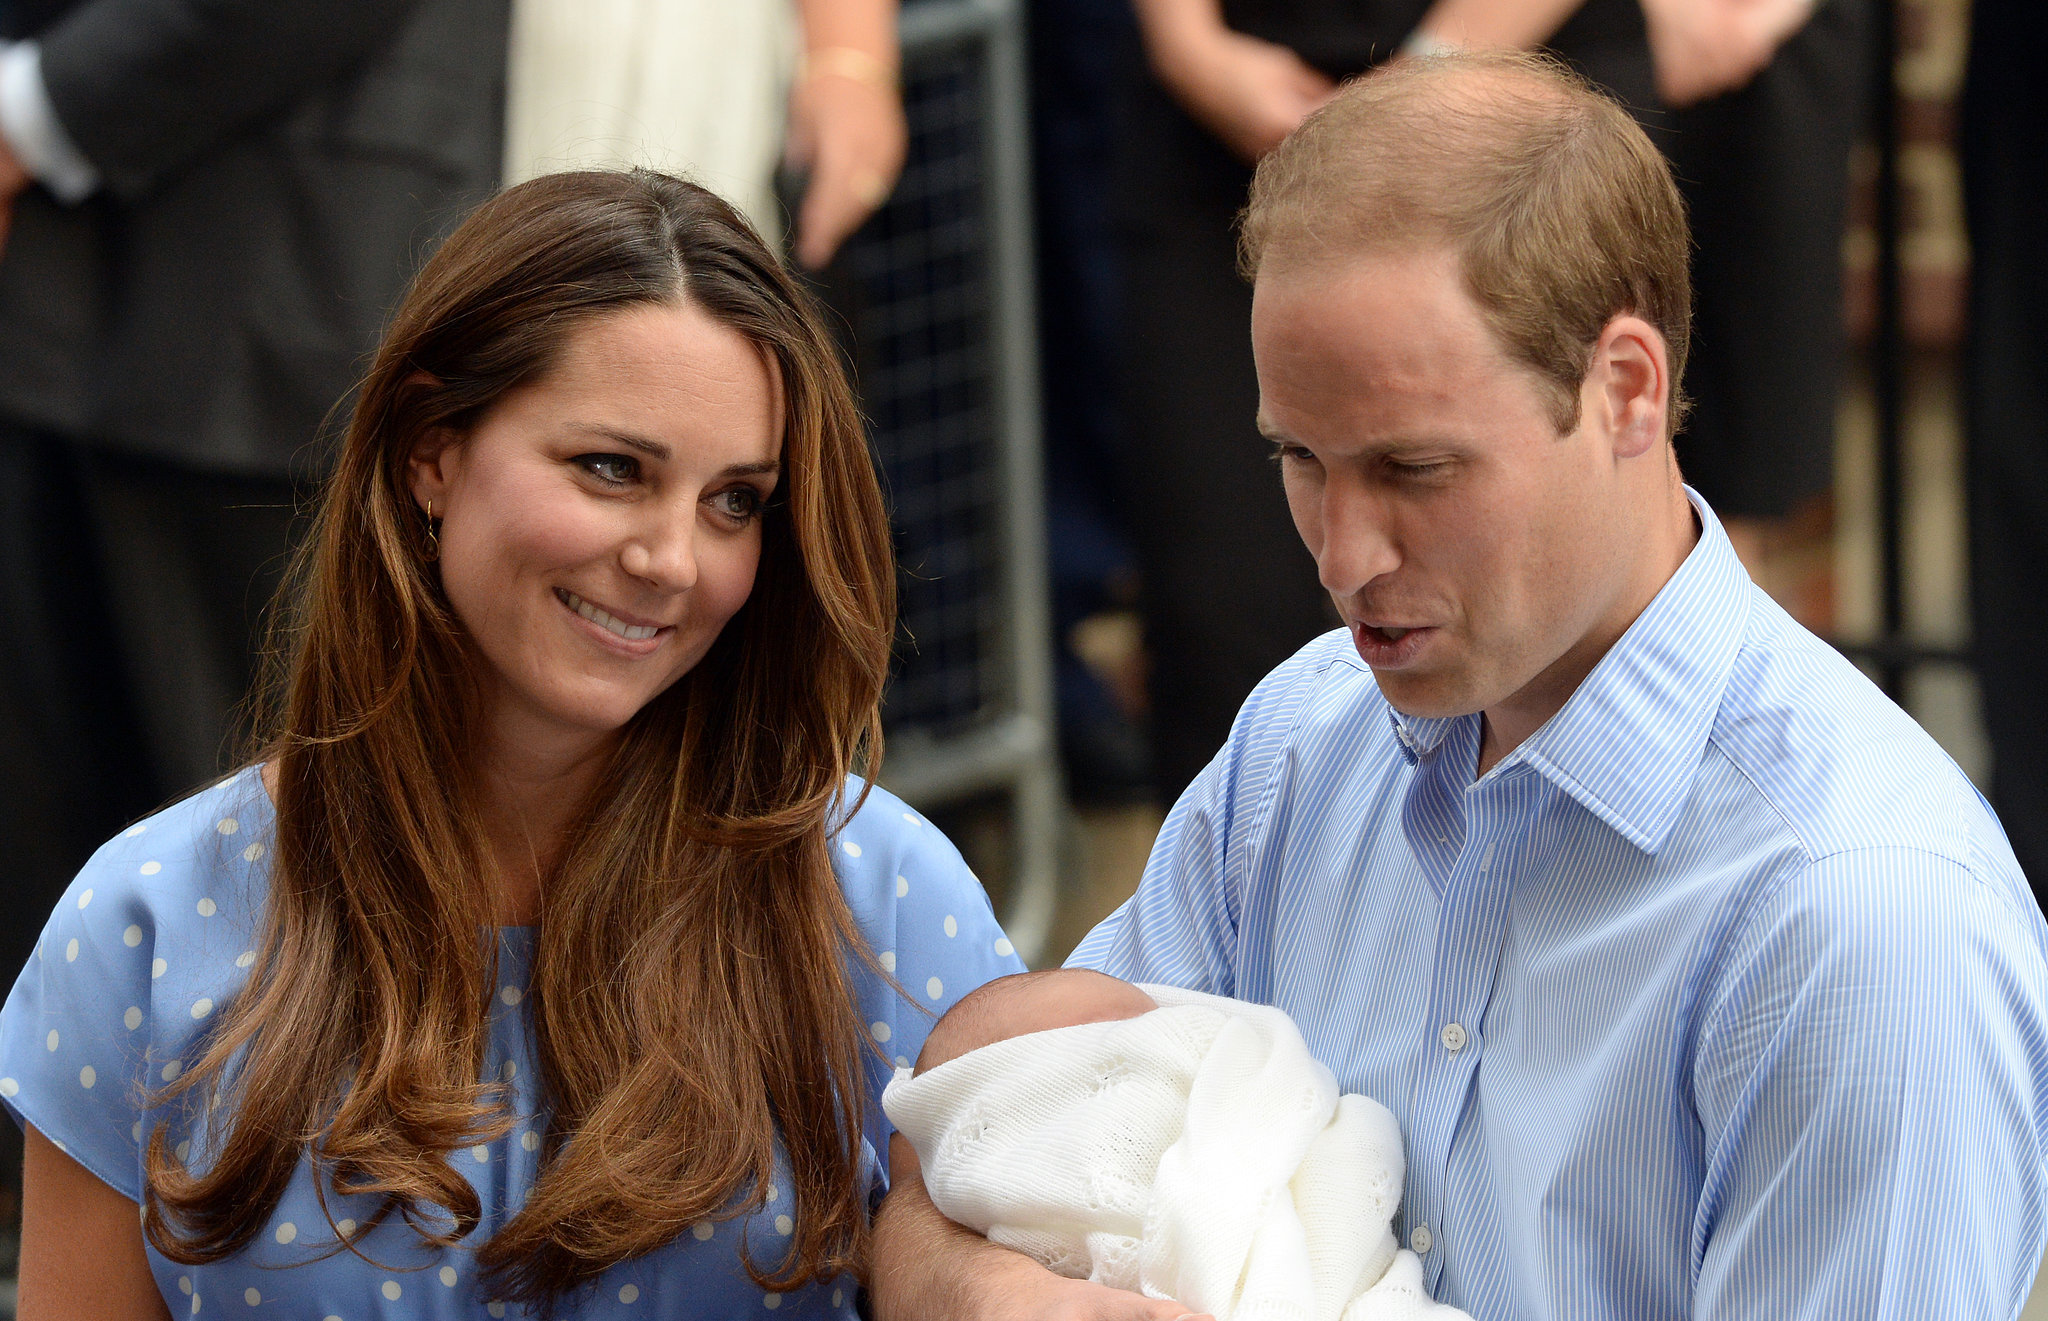 Kate gazed at William when they introduced Prince George to the world in July 2013.